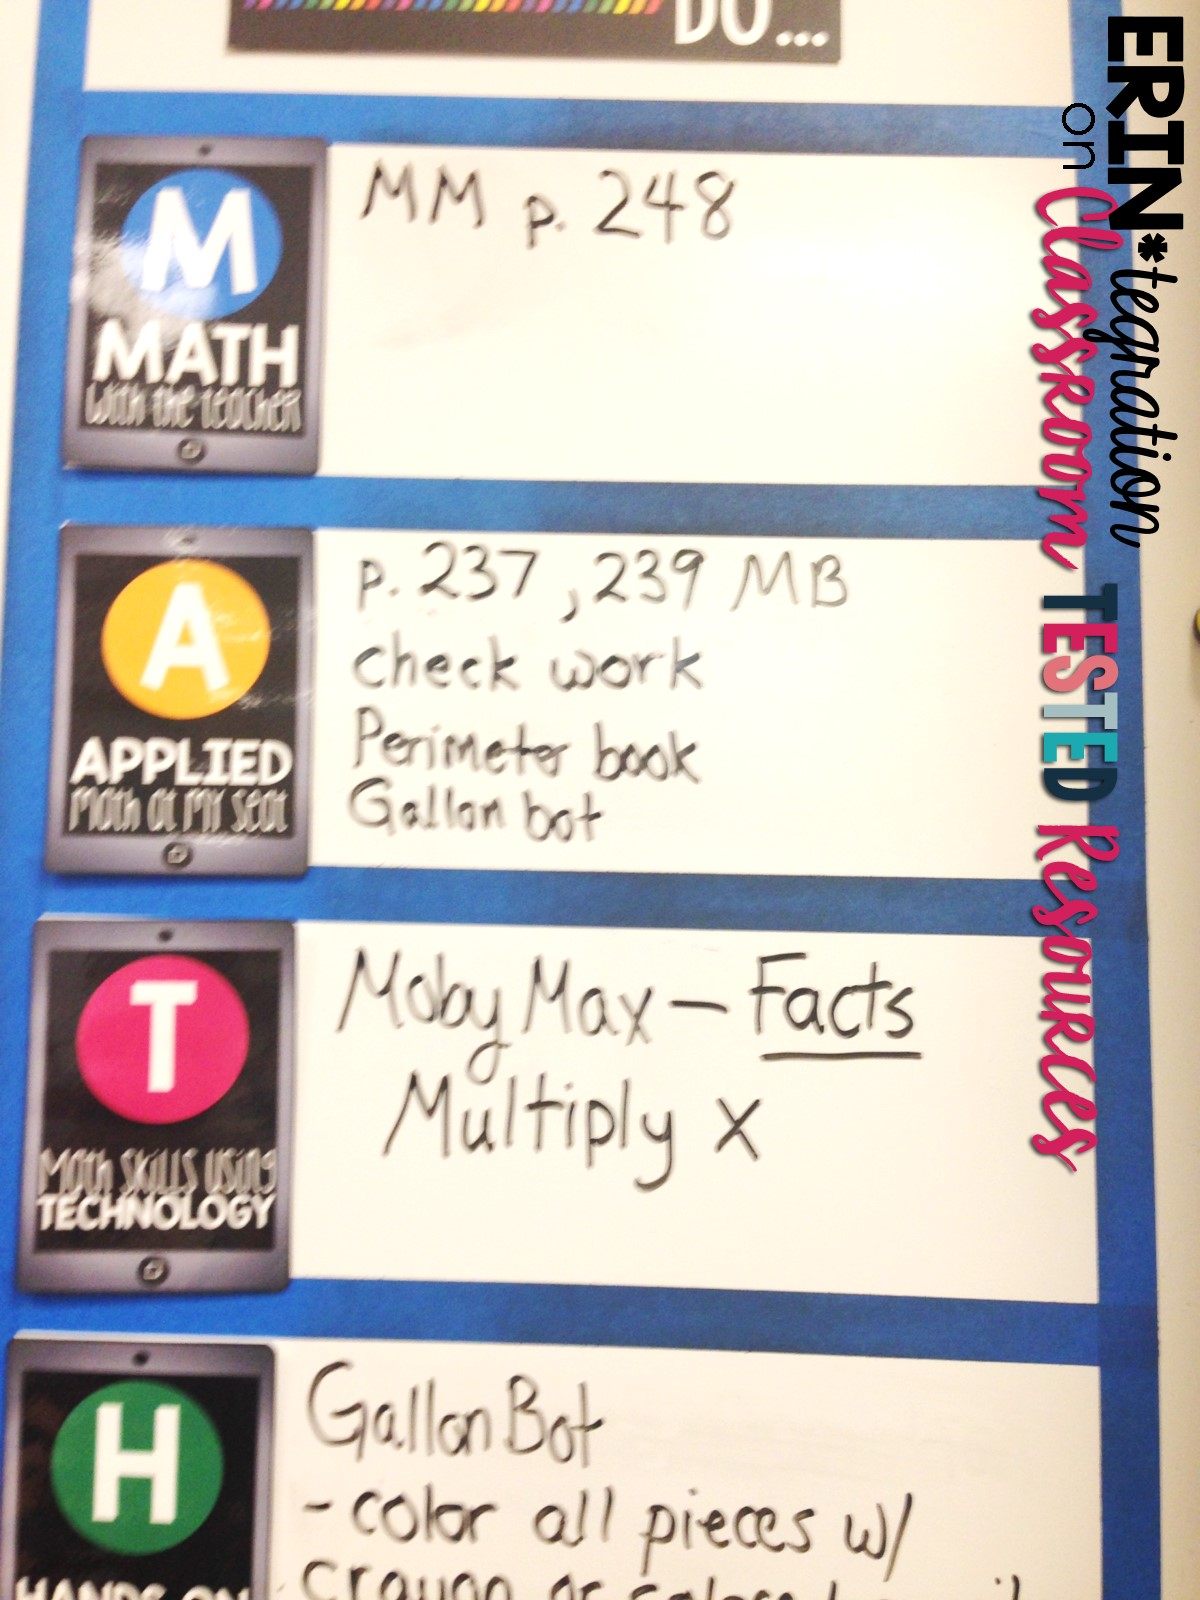 math workshop routines classroom tested resources math workshop routines that really work the routines and organizational systems that help minimize transition